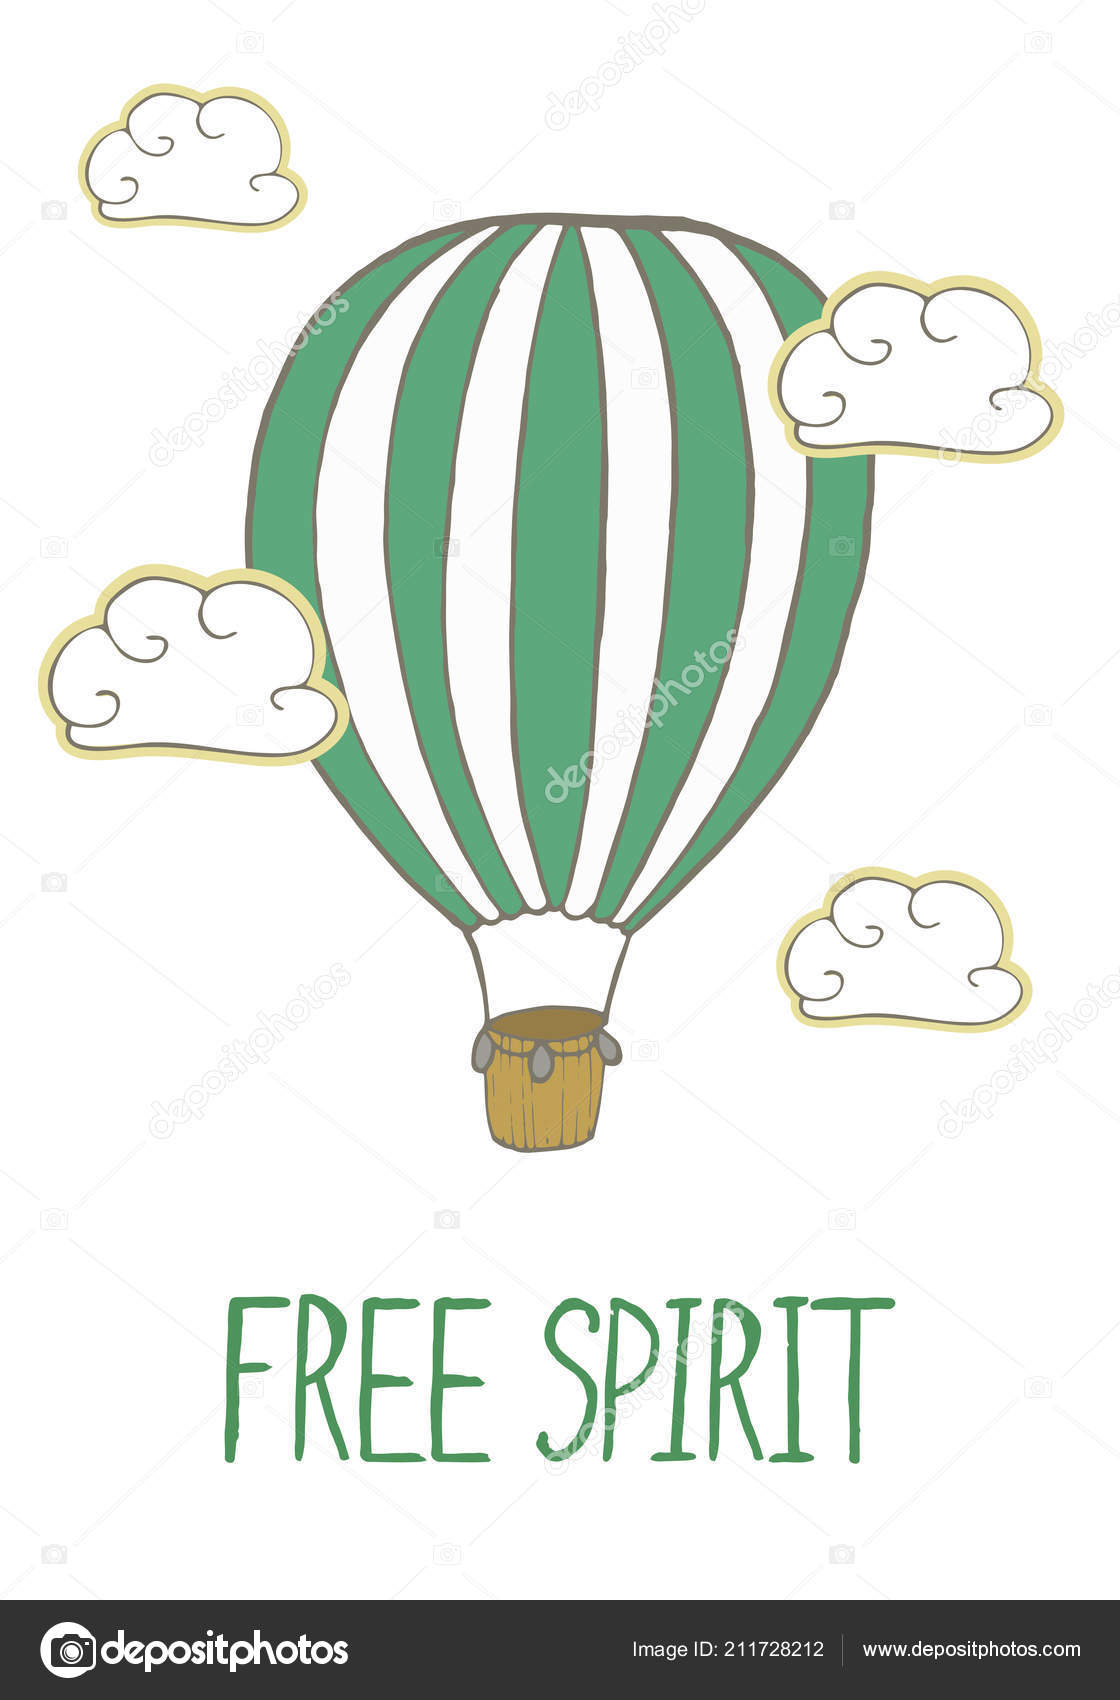 Green Striped Hot Air Balloon Flying Clouds Positive Quote Free